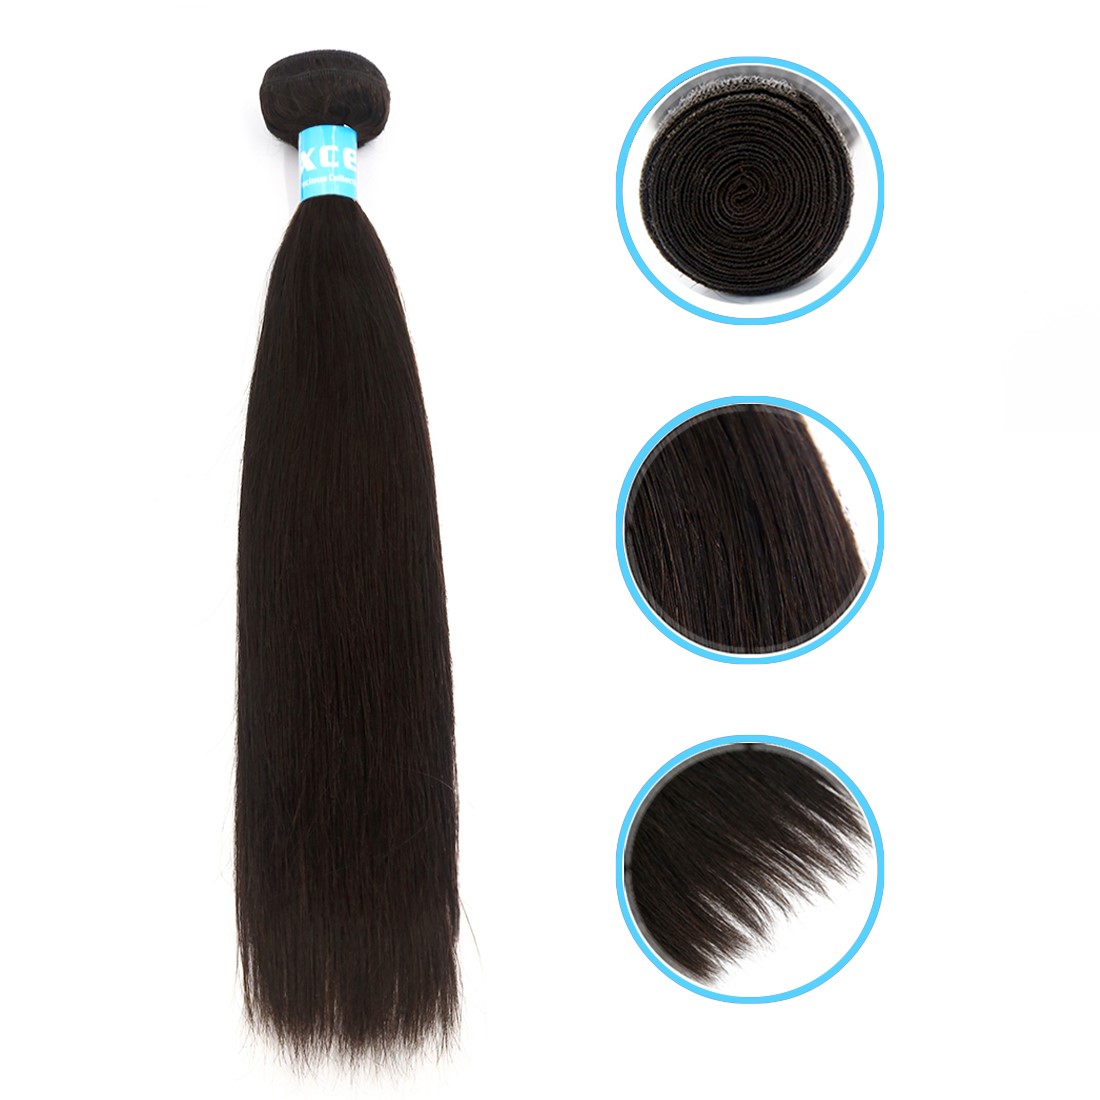 """Unique Bargains Brazilian Remy Silky Straight Human Hair Weft Extensions 6A 24"""" 1 Bundle"""